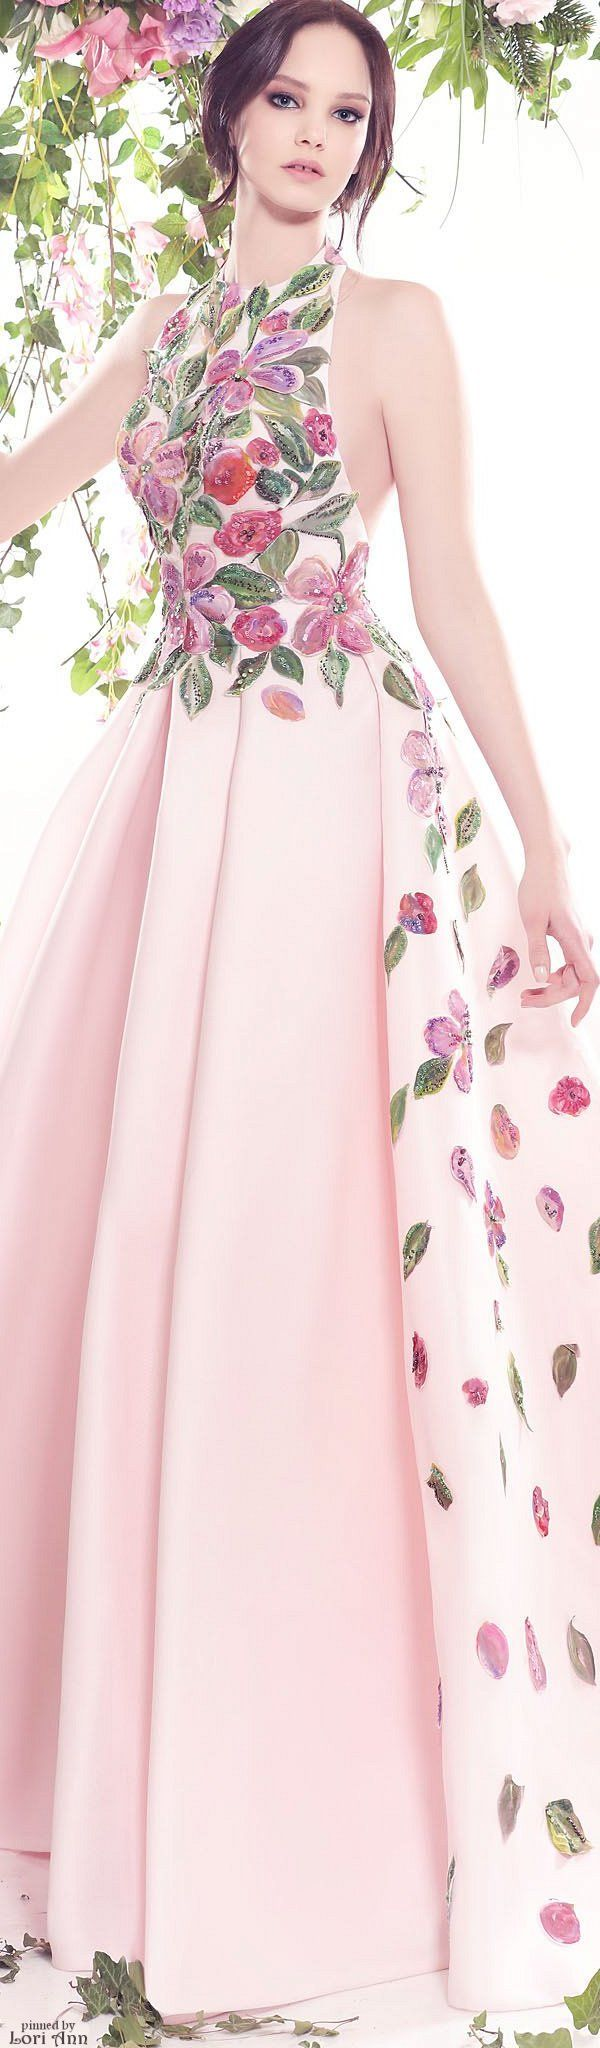 best images about potential prom dresses on pinterest evening